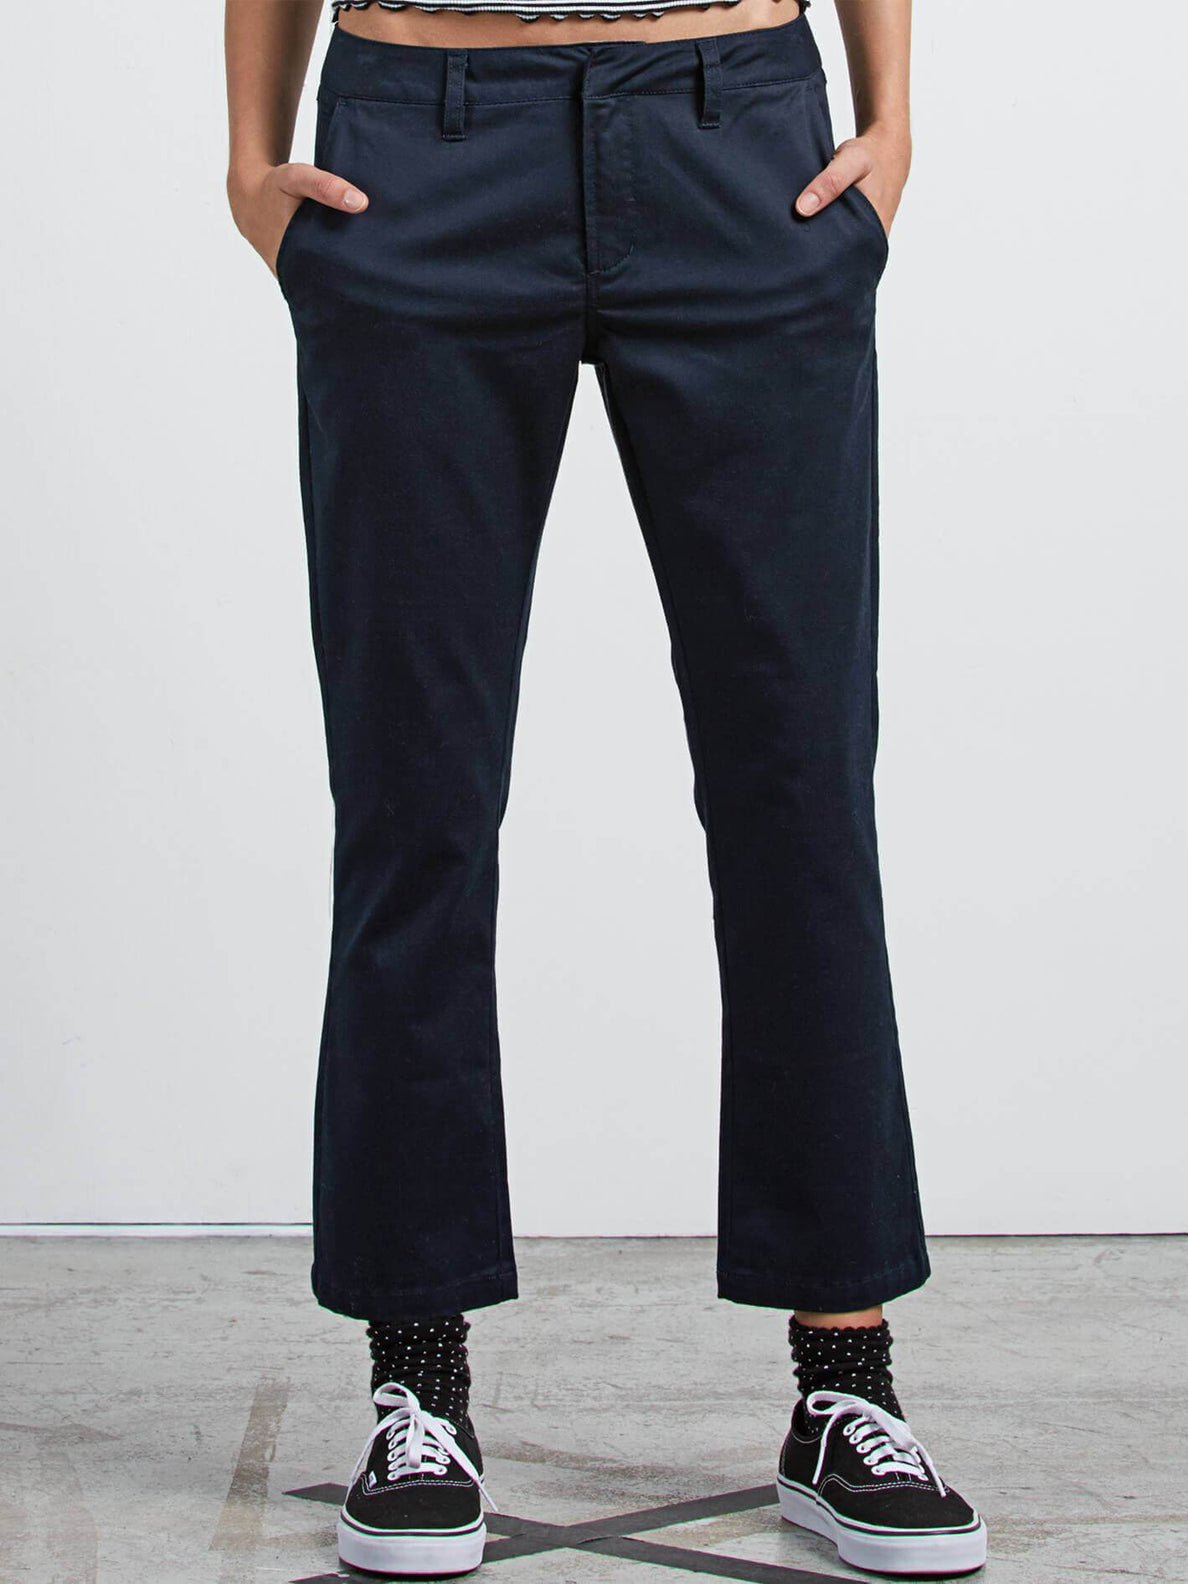 Frochickie Pants In Navy, Front View